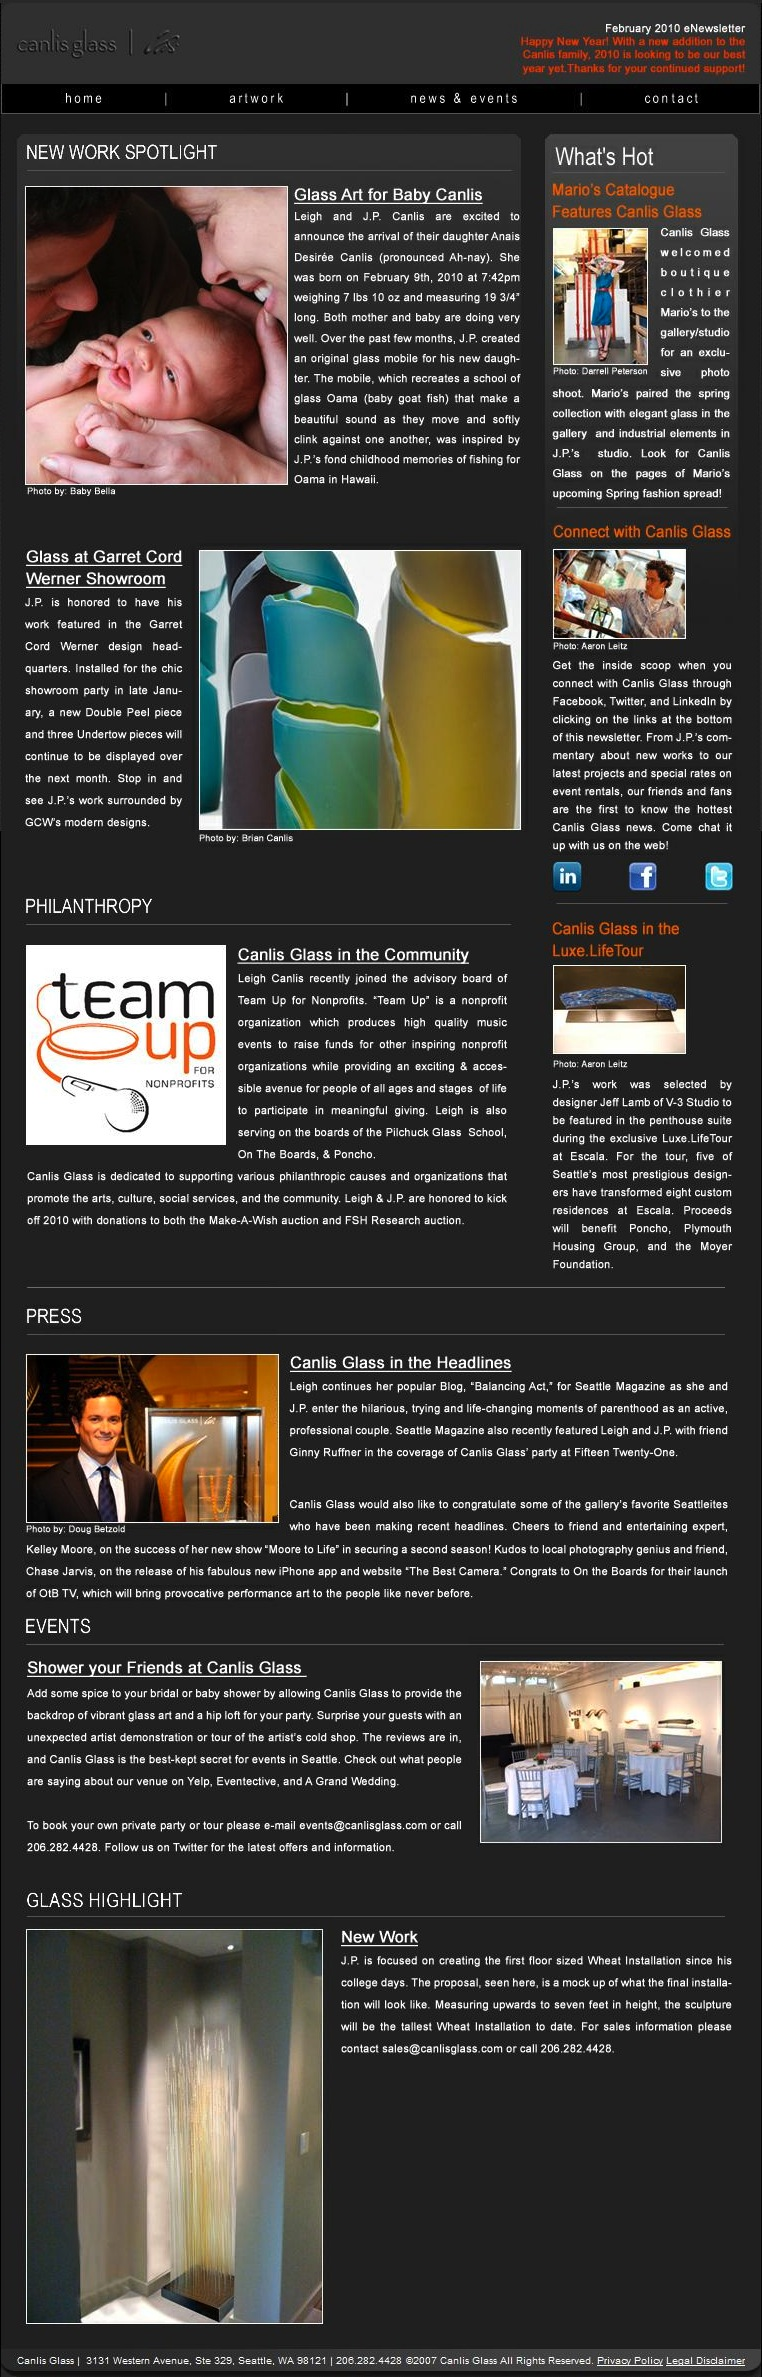 9-February2010Newsletter.jpeg